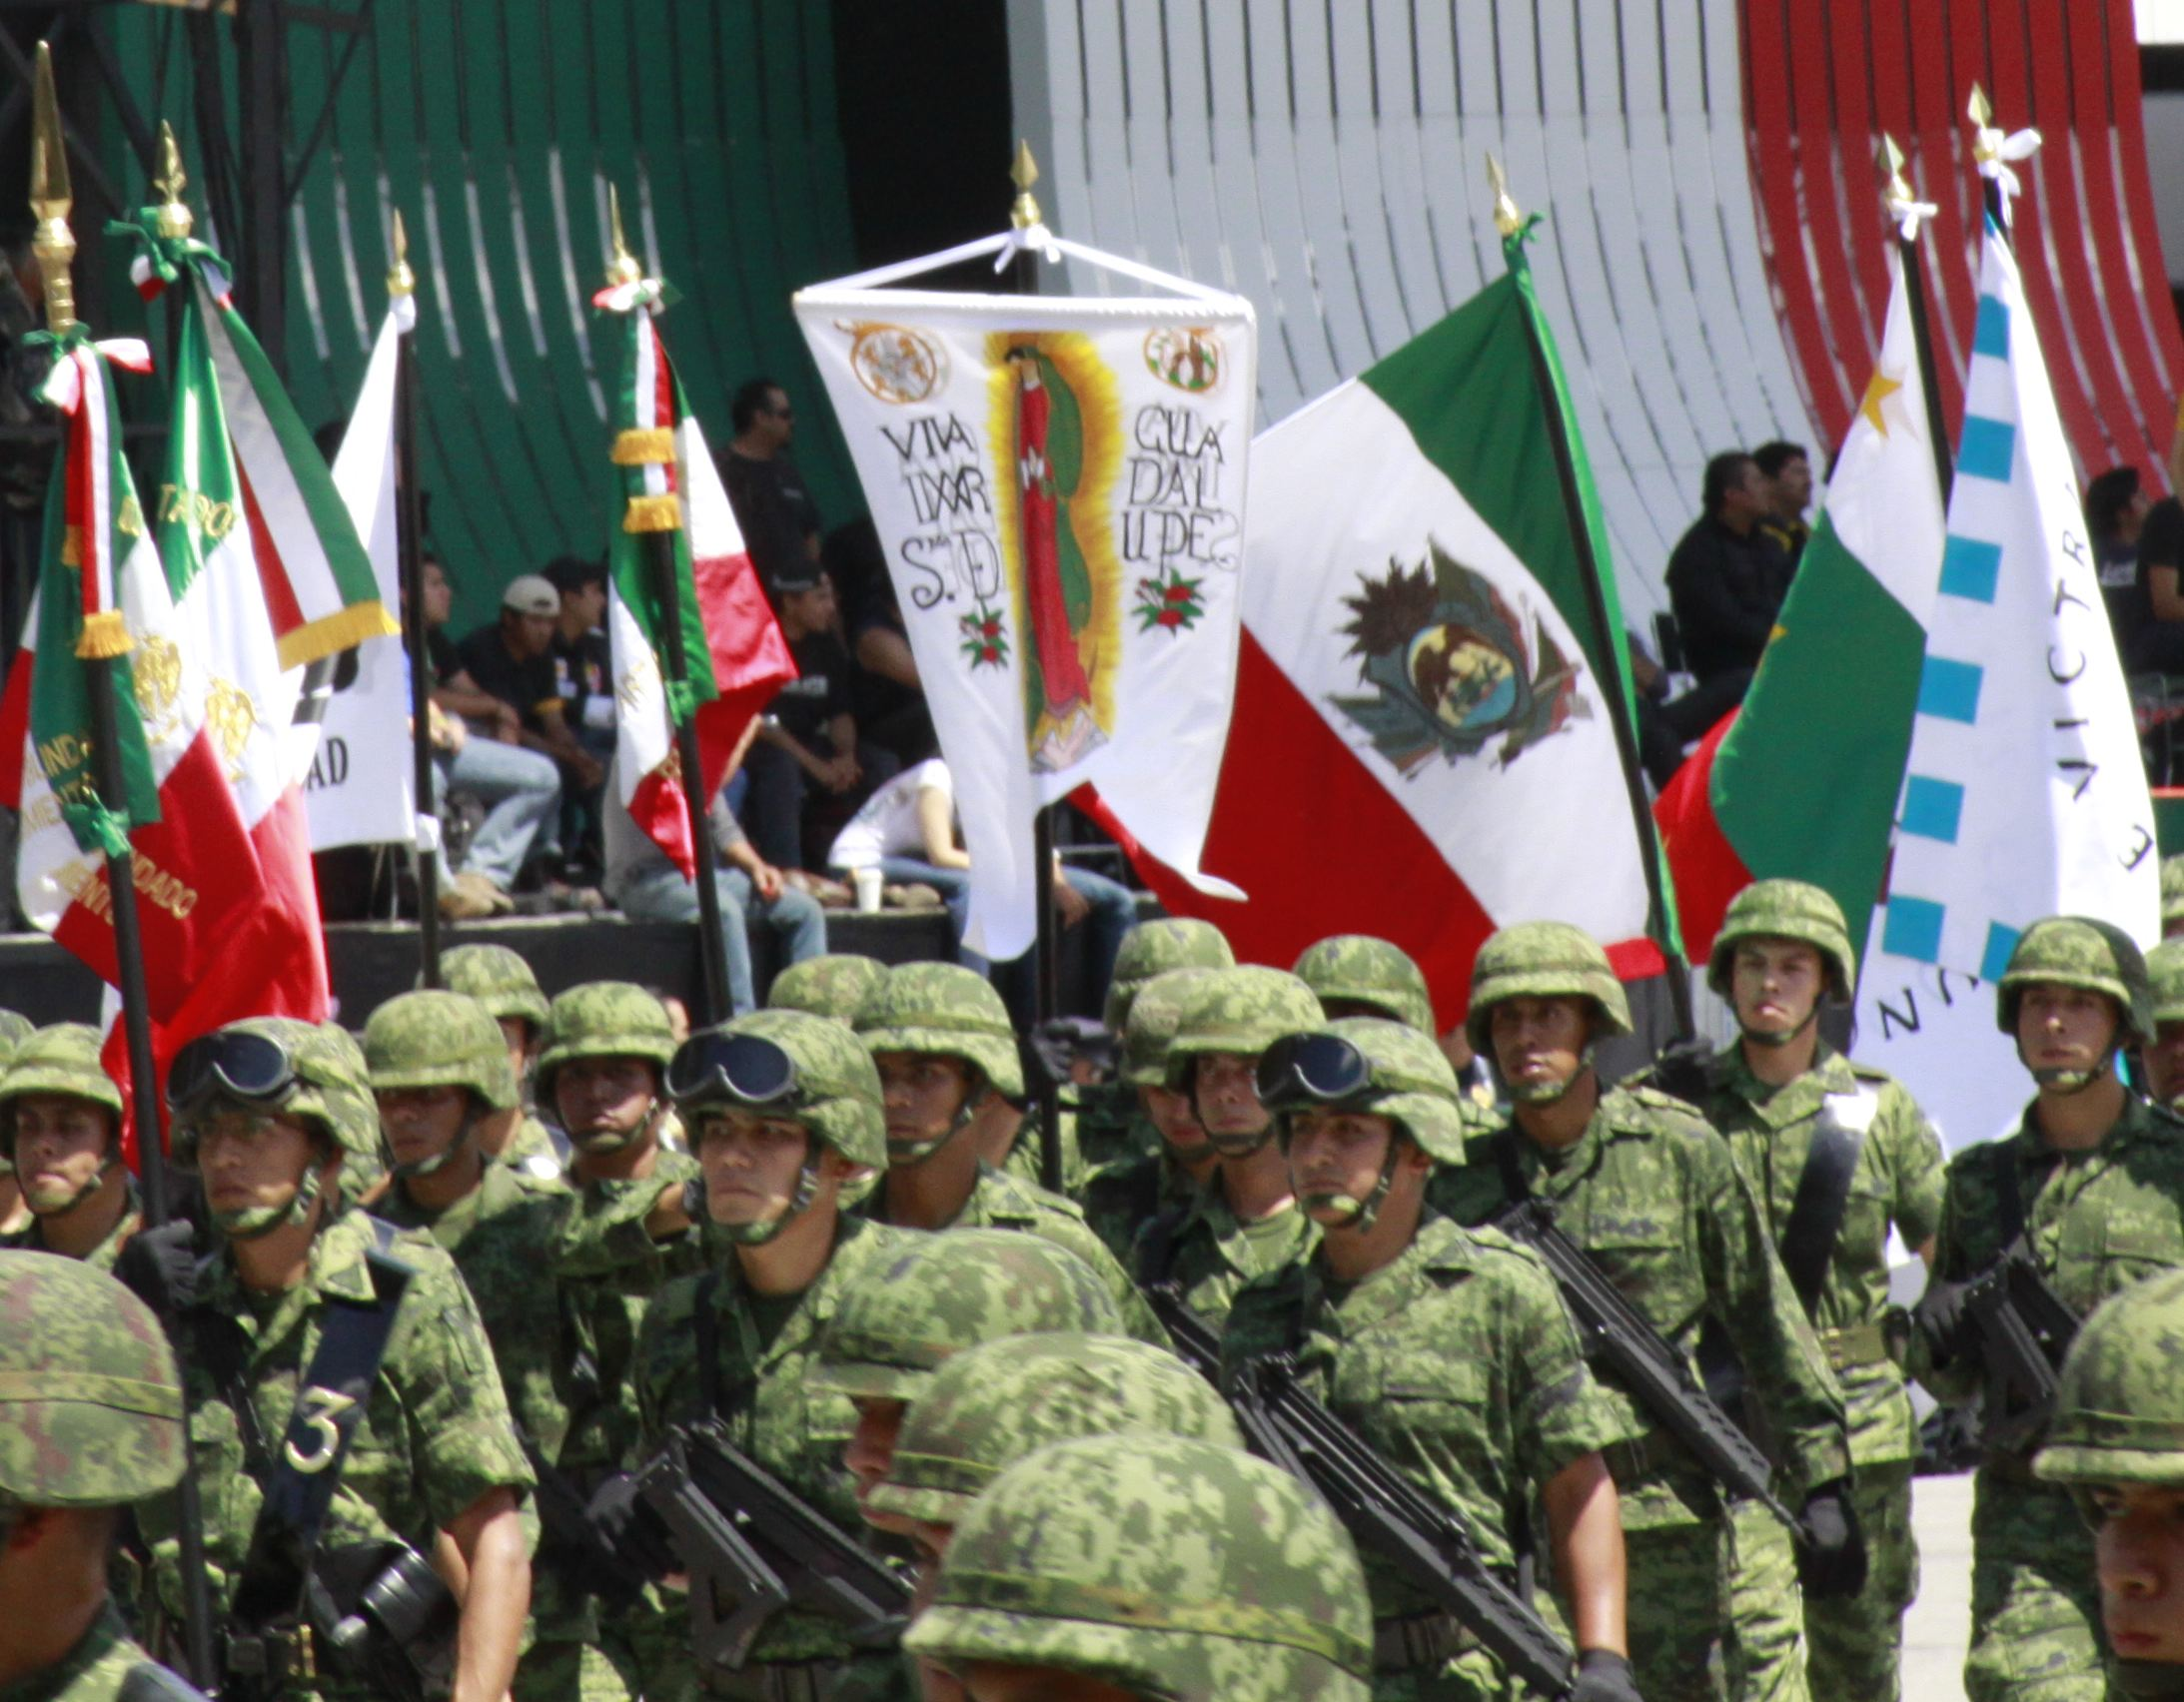 mexican independence day - photo #24